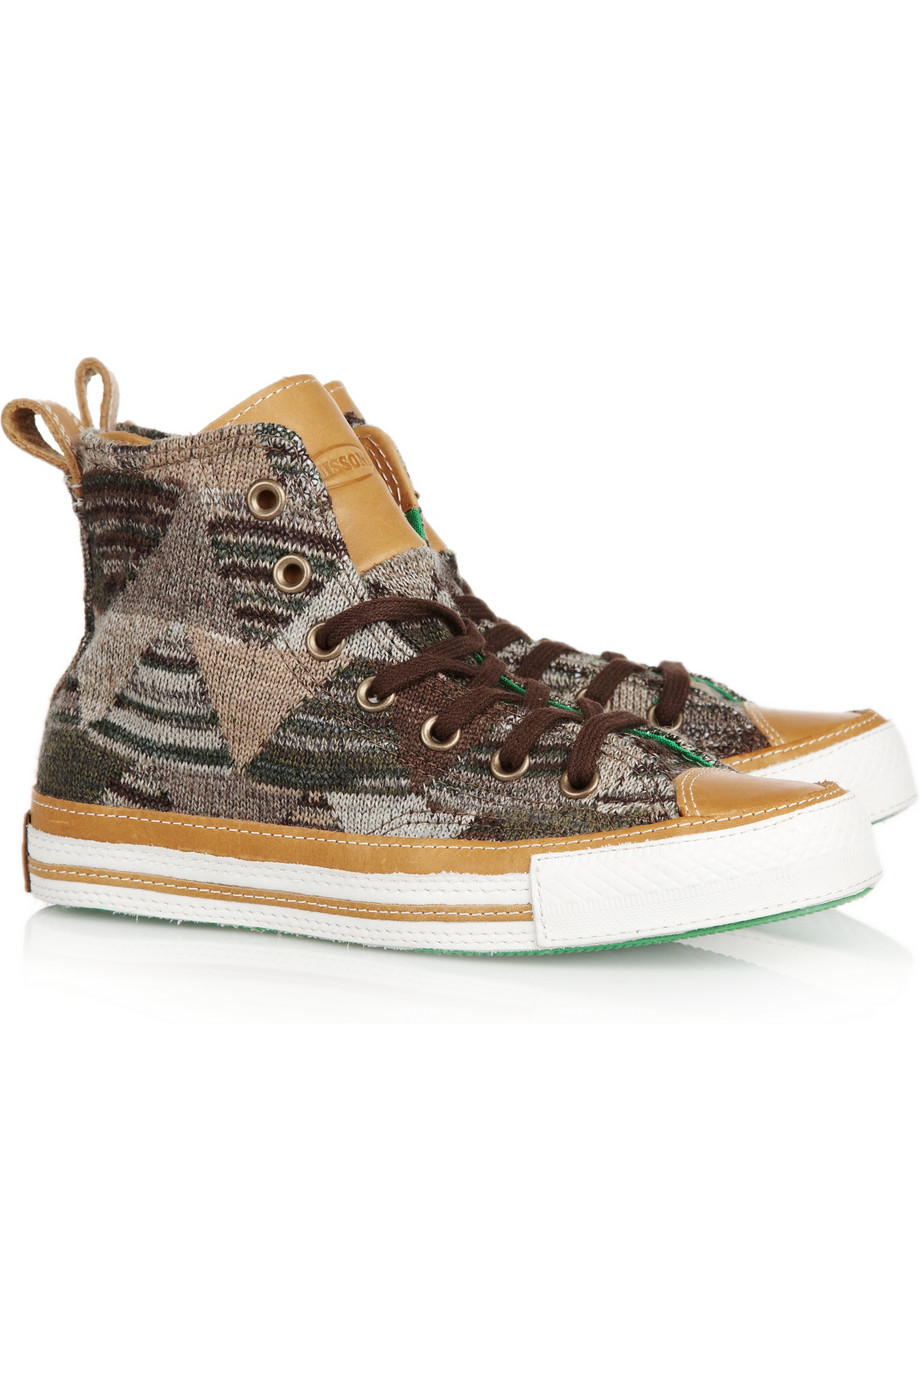 Lyst Converse Knitted Hightop Sneakers In Brown